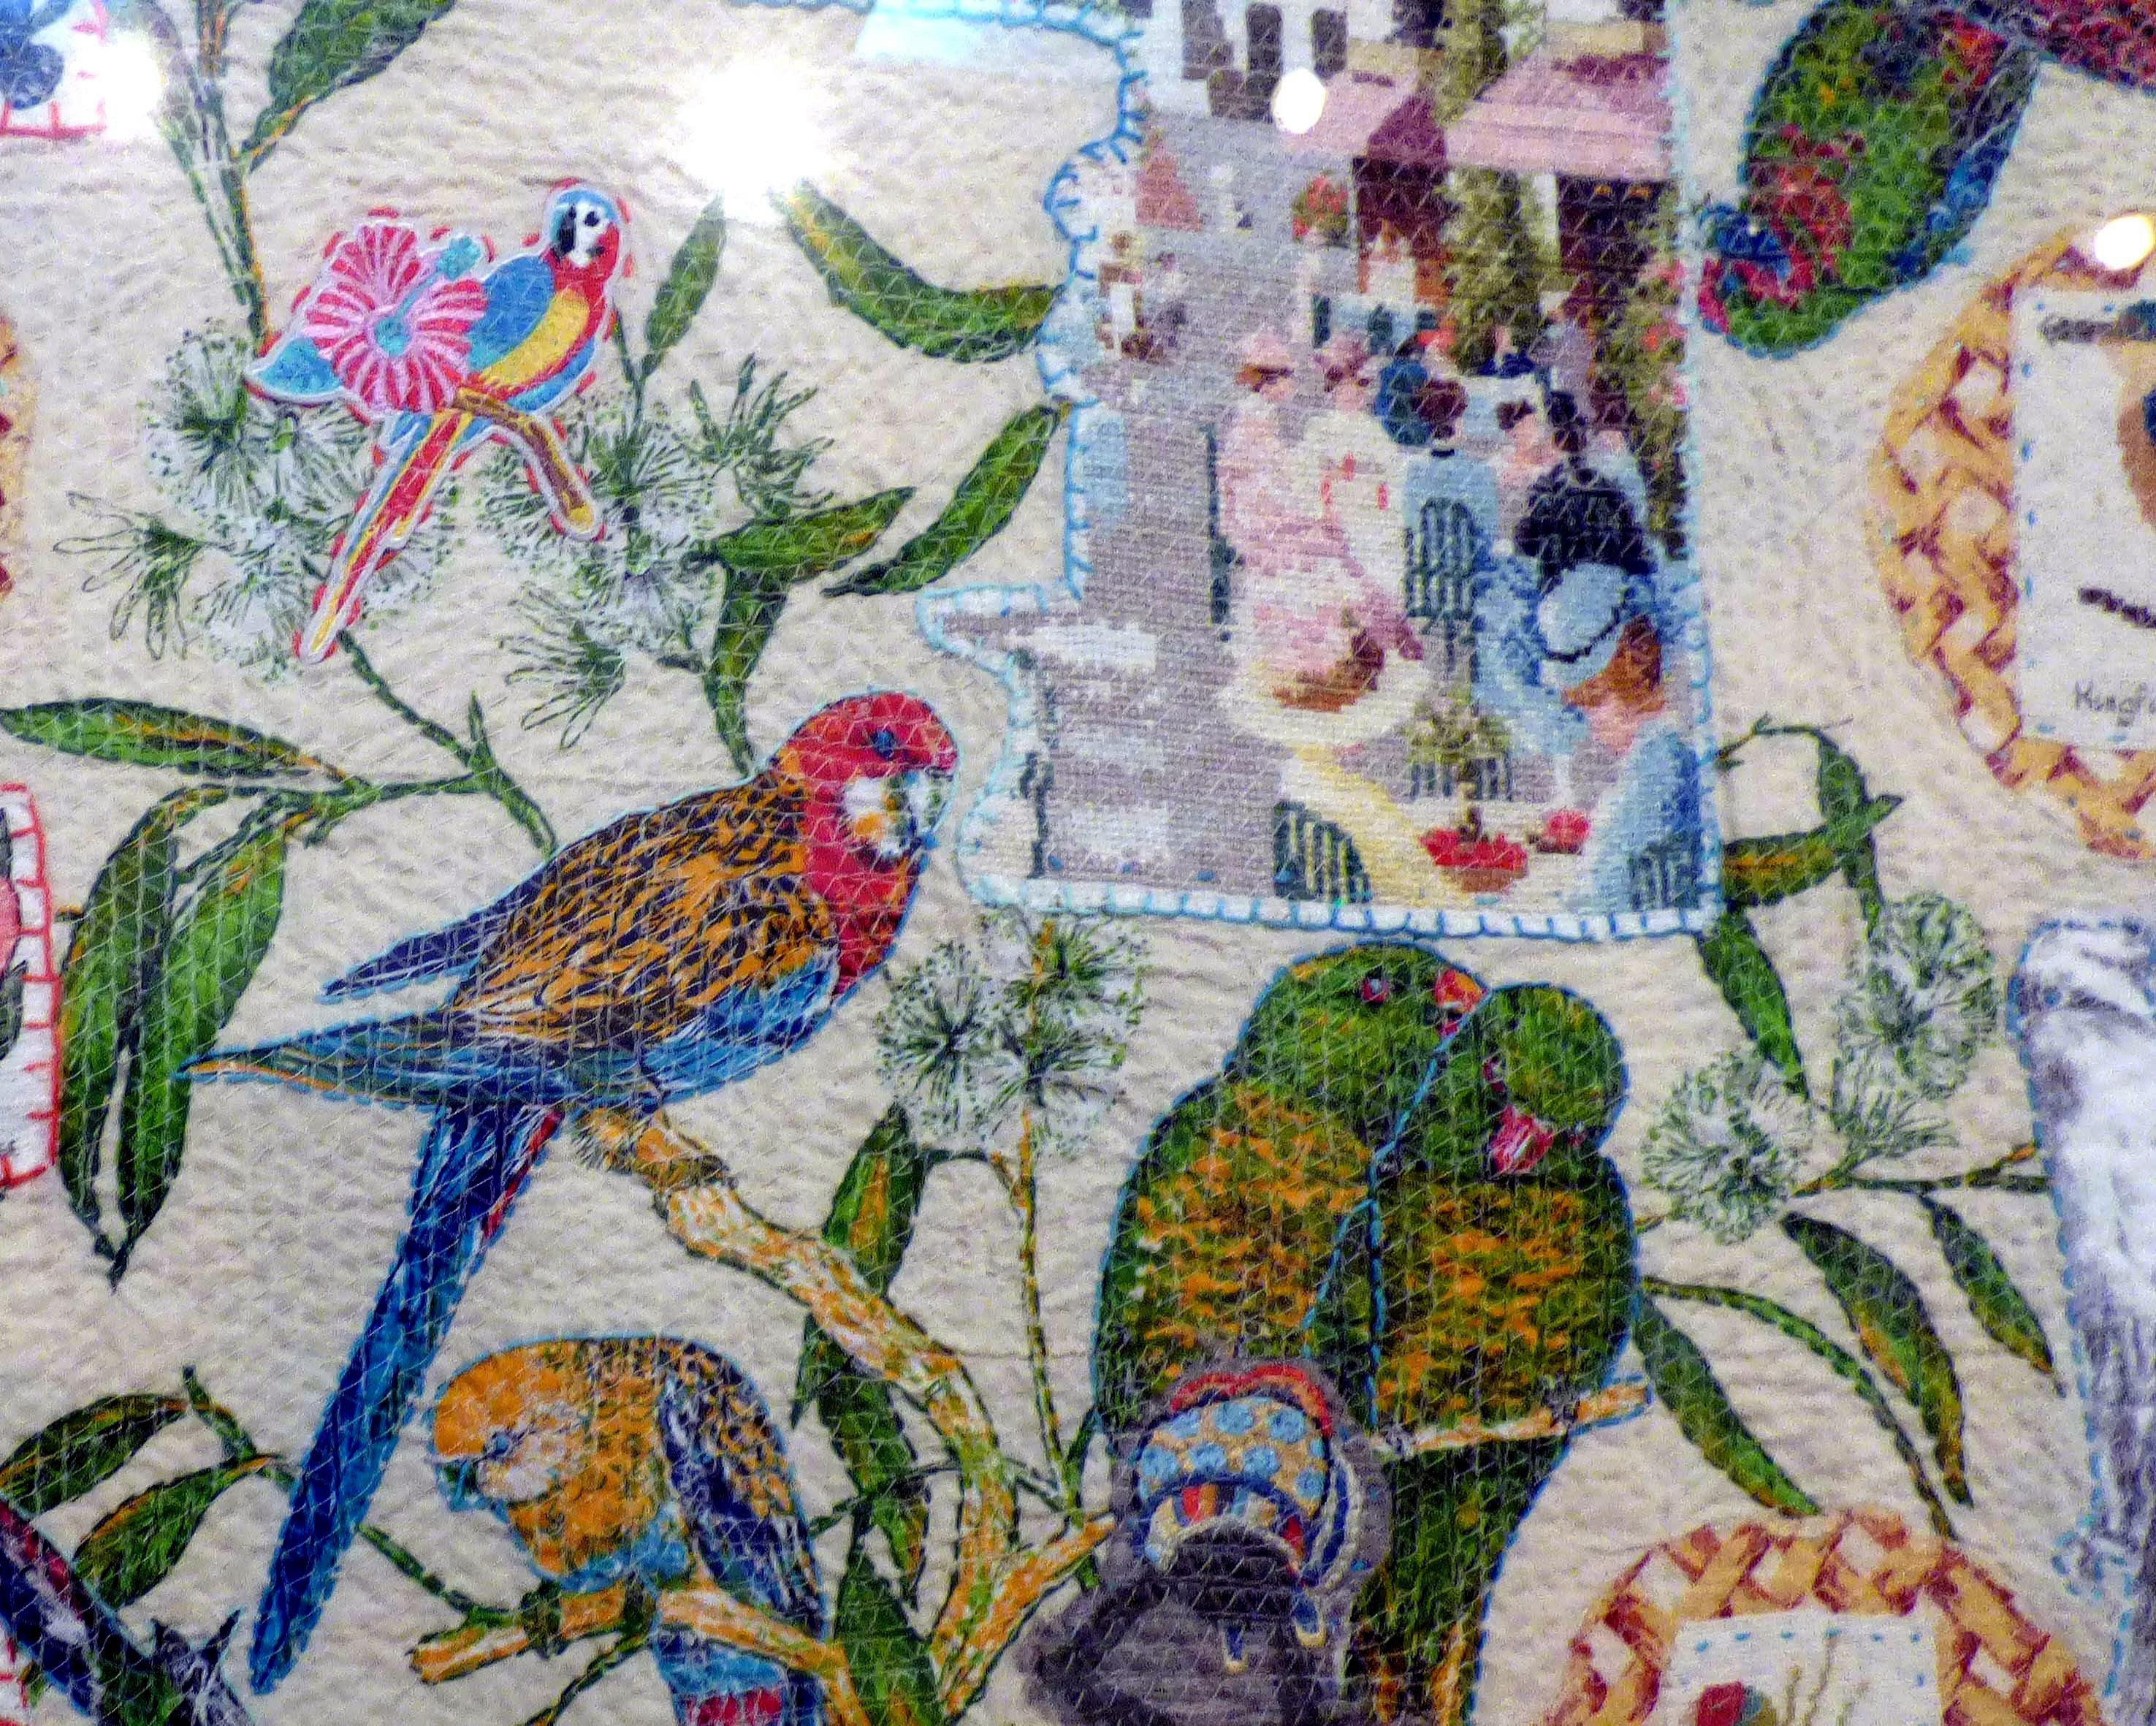 (detail) AUSTRALIANS, mixed media textiles by Anne Kelly, Ruthin Craft Gallery, July 2021